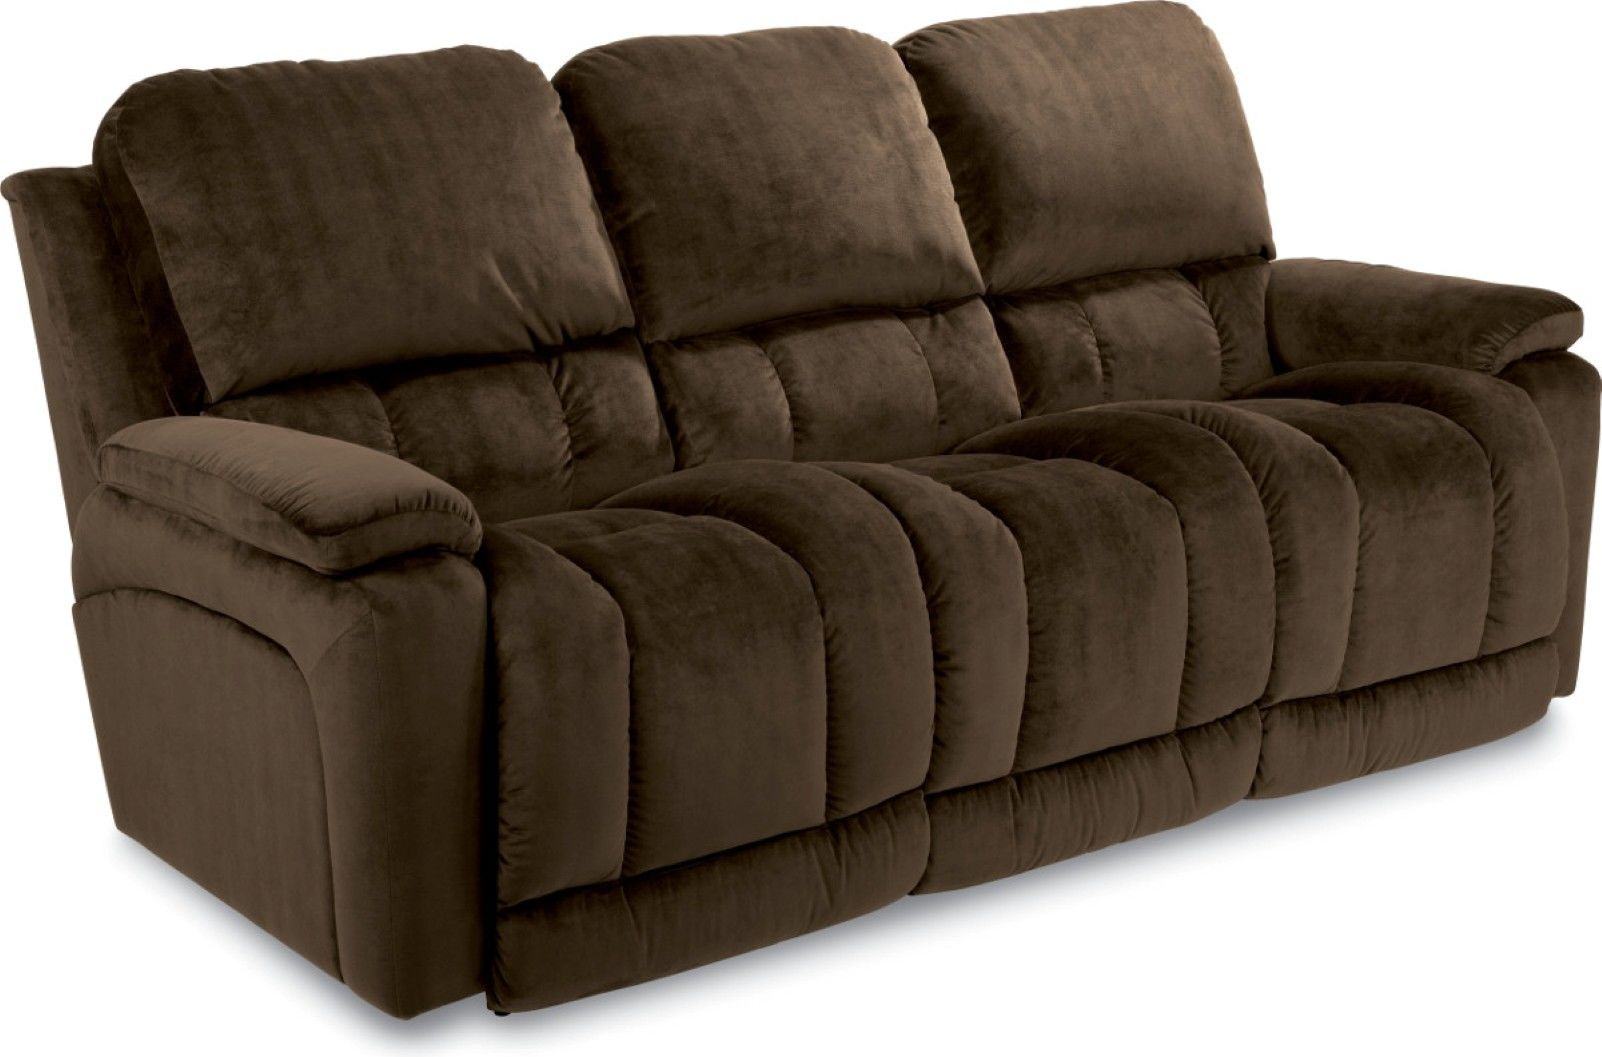 awesome full reclining sofa design-Lovely Full Reclining sofa Ideas